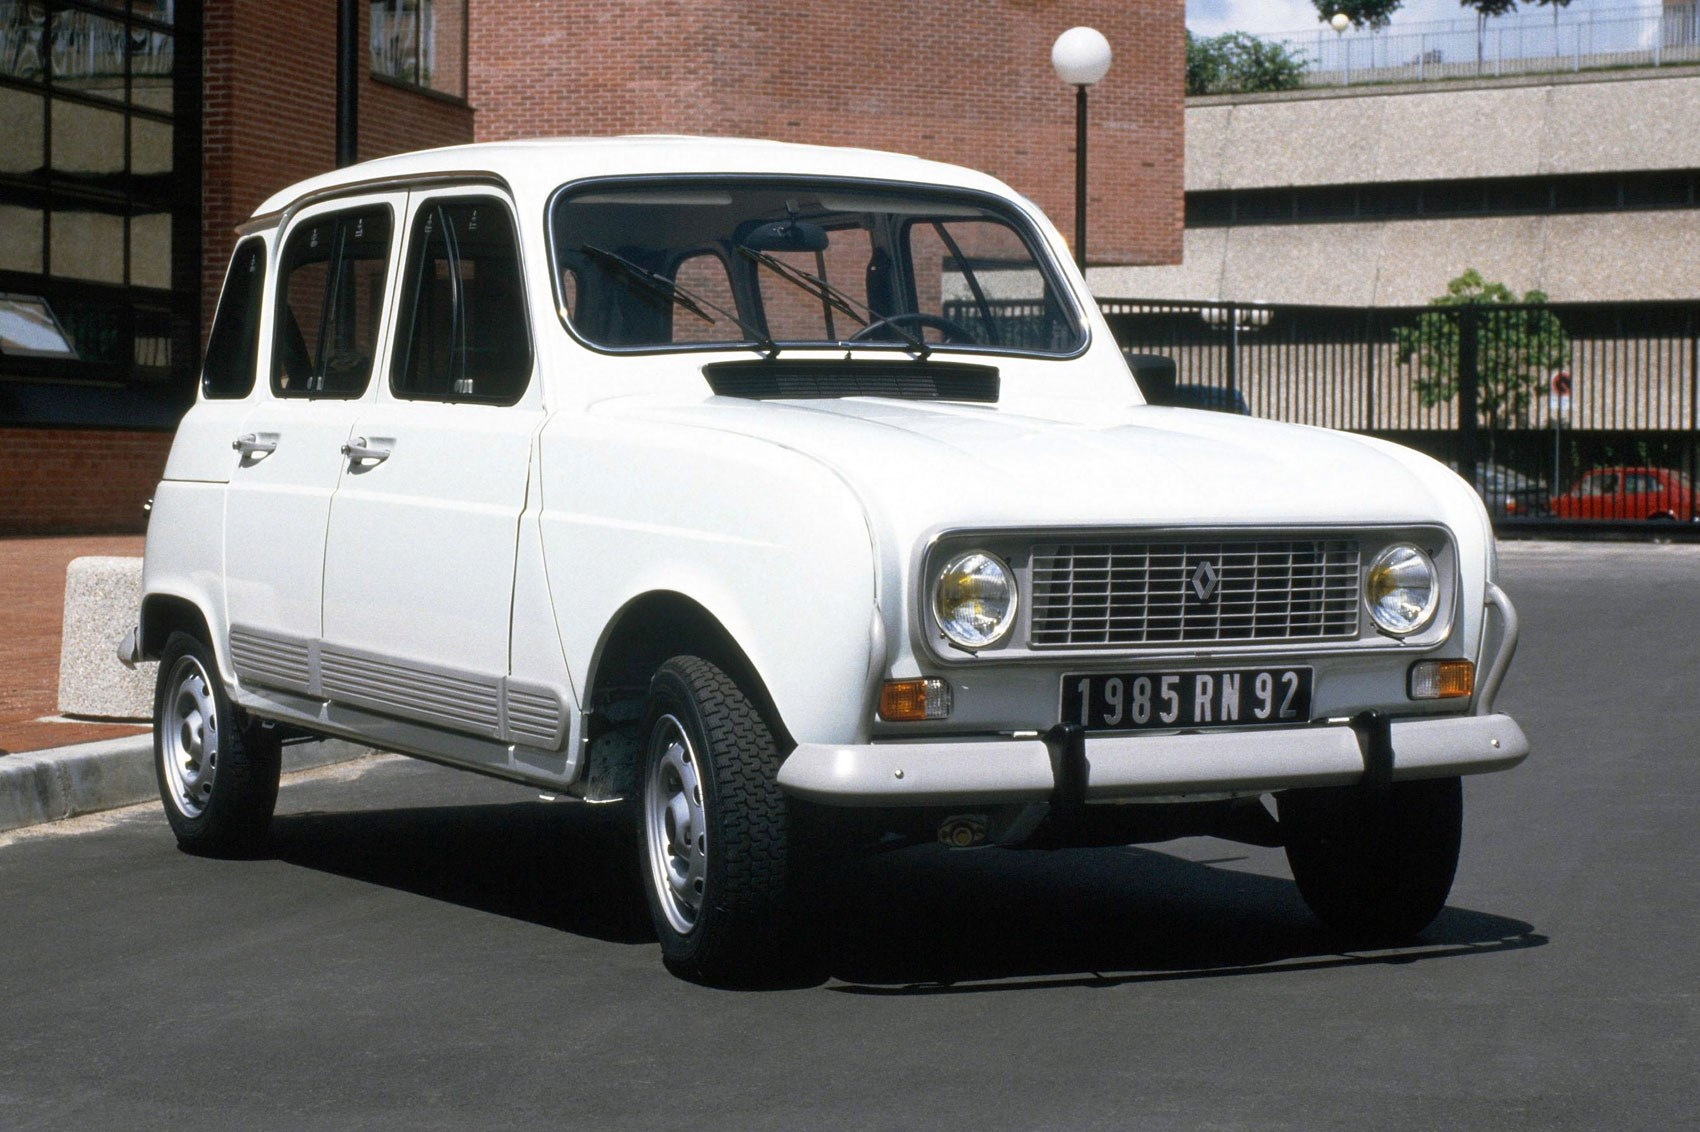 hight resolution of  latest renault 4 was two and a half years old paraded 51 246km across the odometer and was reasonably shagged in every department